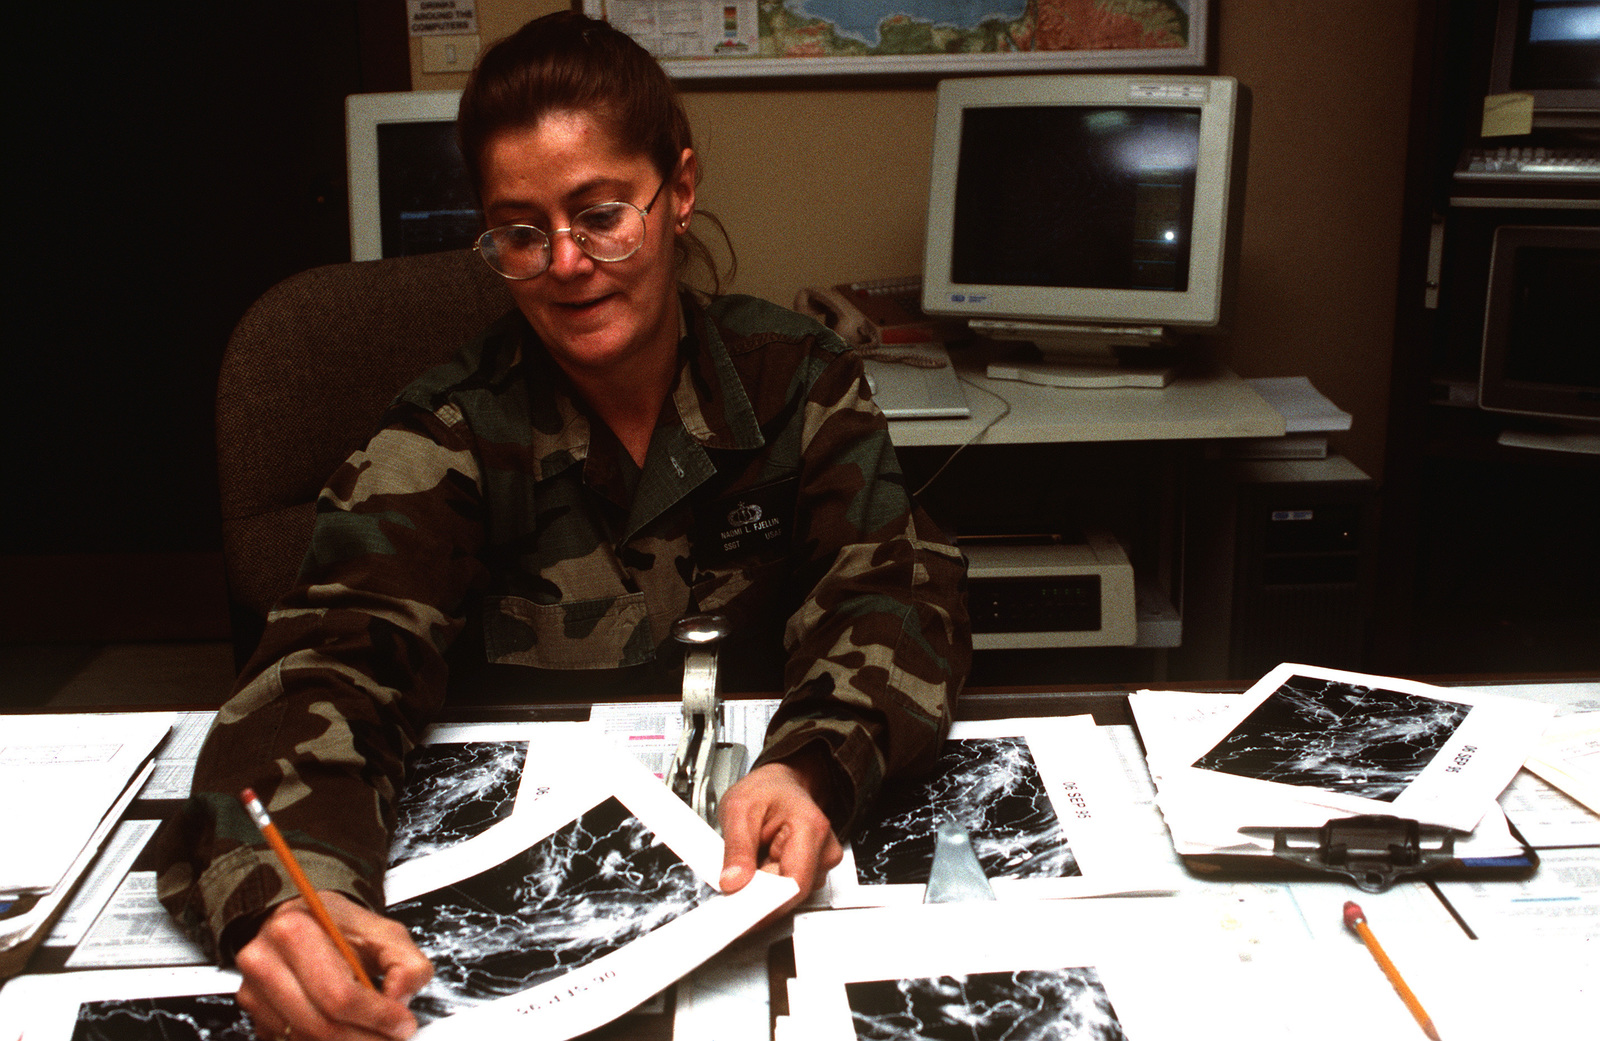 US Air Force STAFF SGT. Fjellin reviews weather conditions over Bosnia for the preparation and support of aircraft involved in NATO airstrikes against the Bosnian Serbs